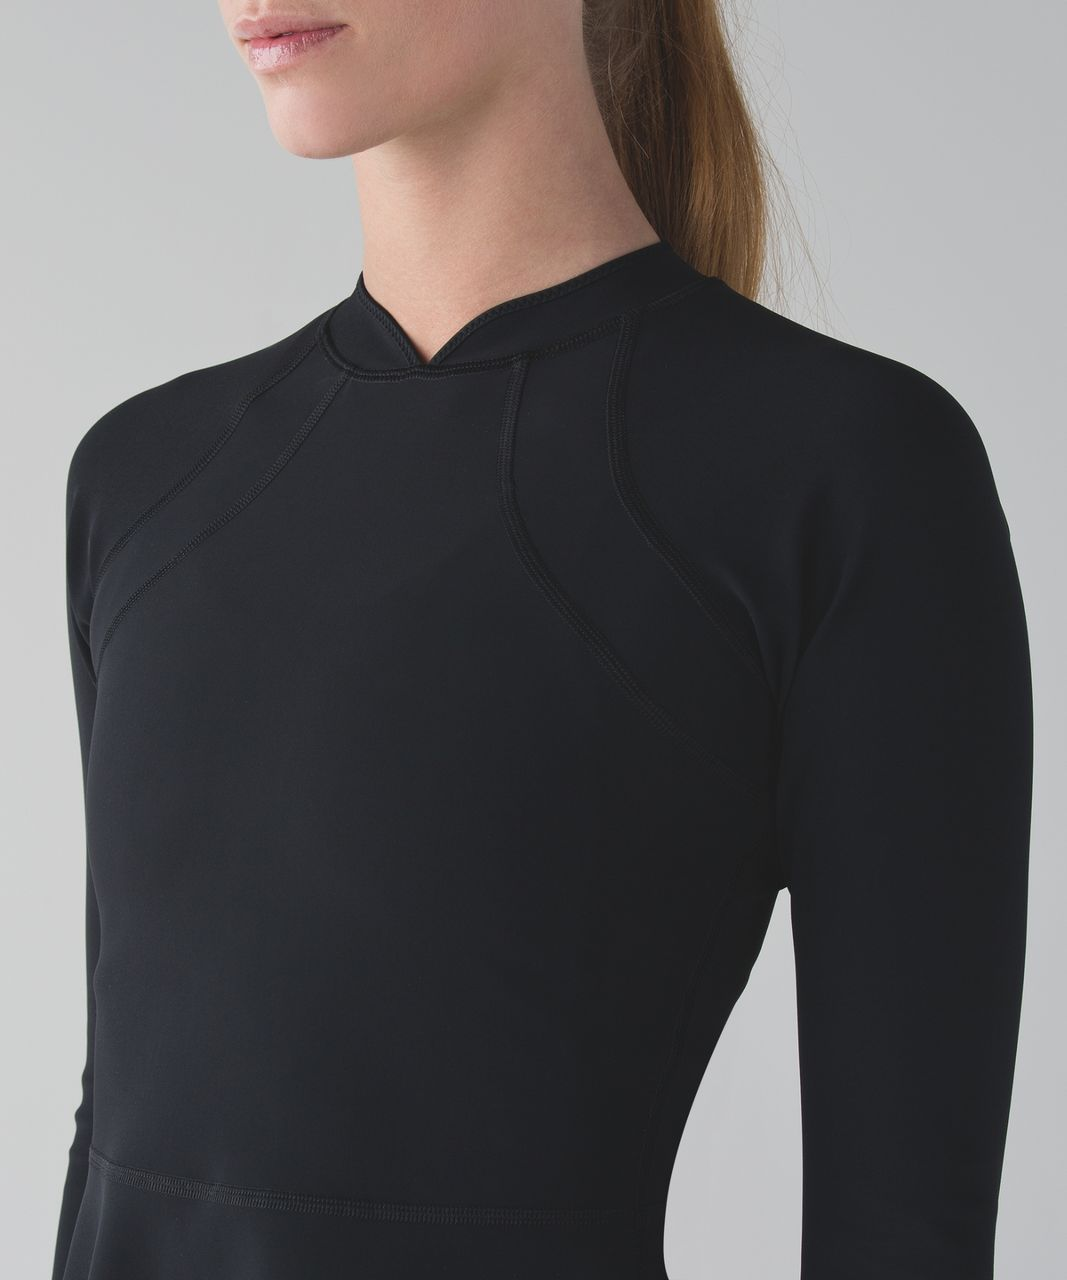 Lululemon Free To Paddle Top - Black